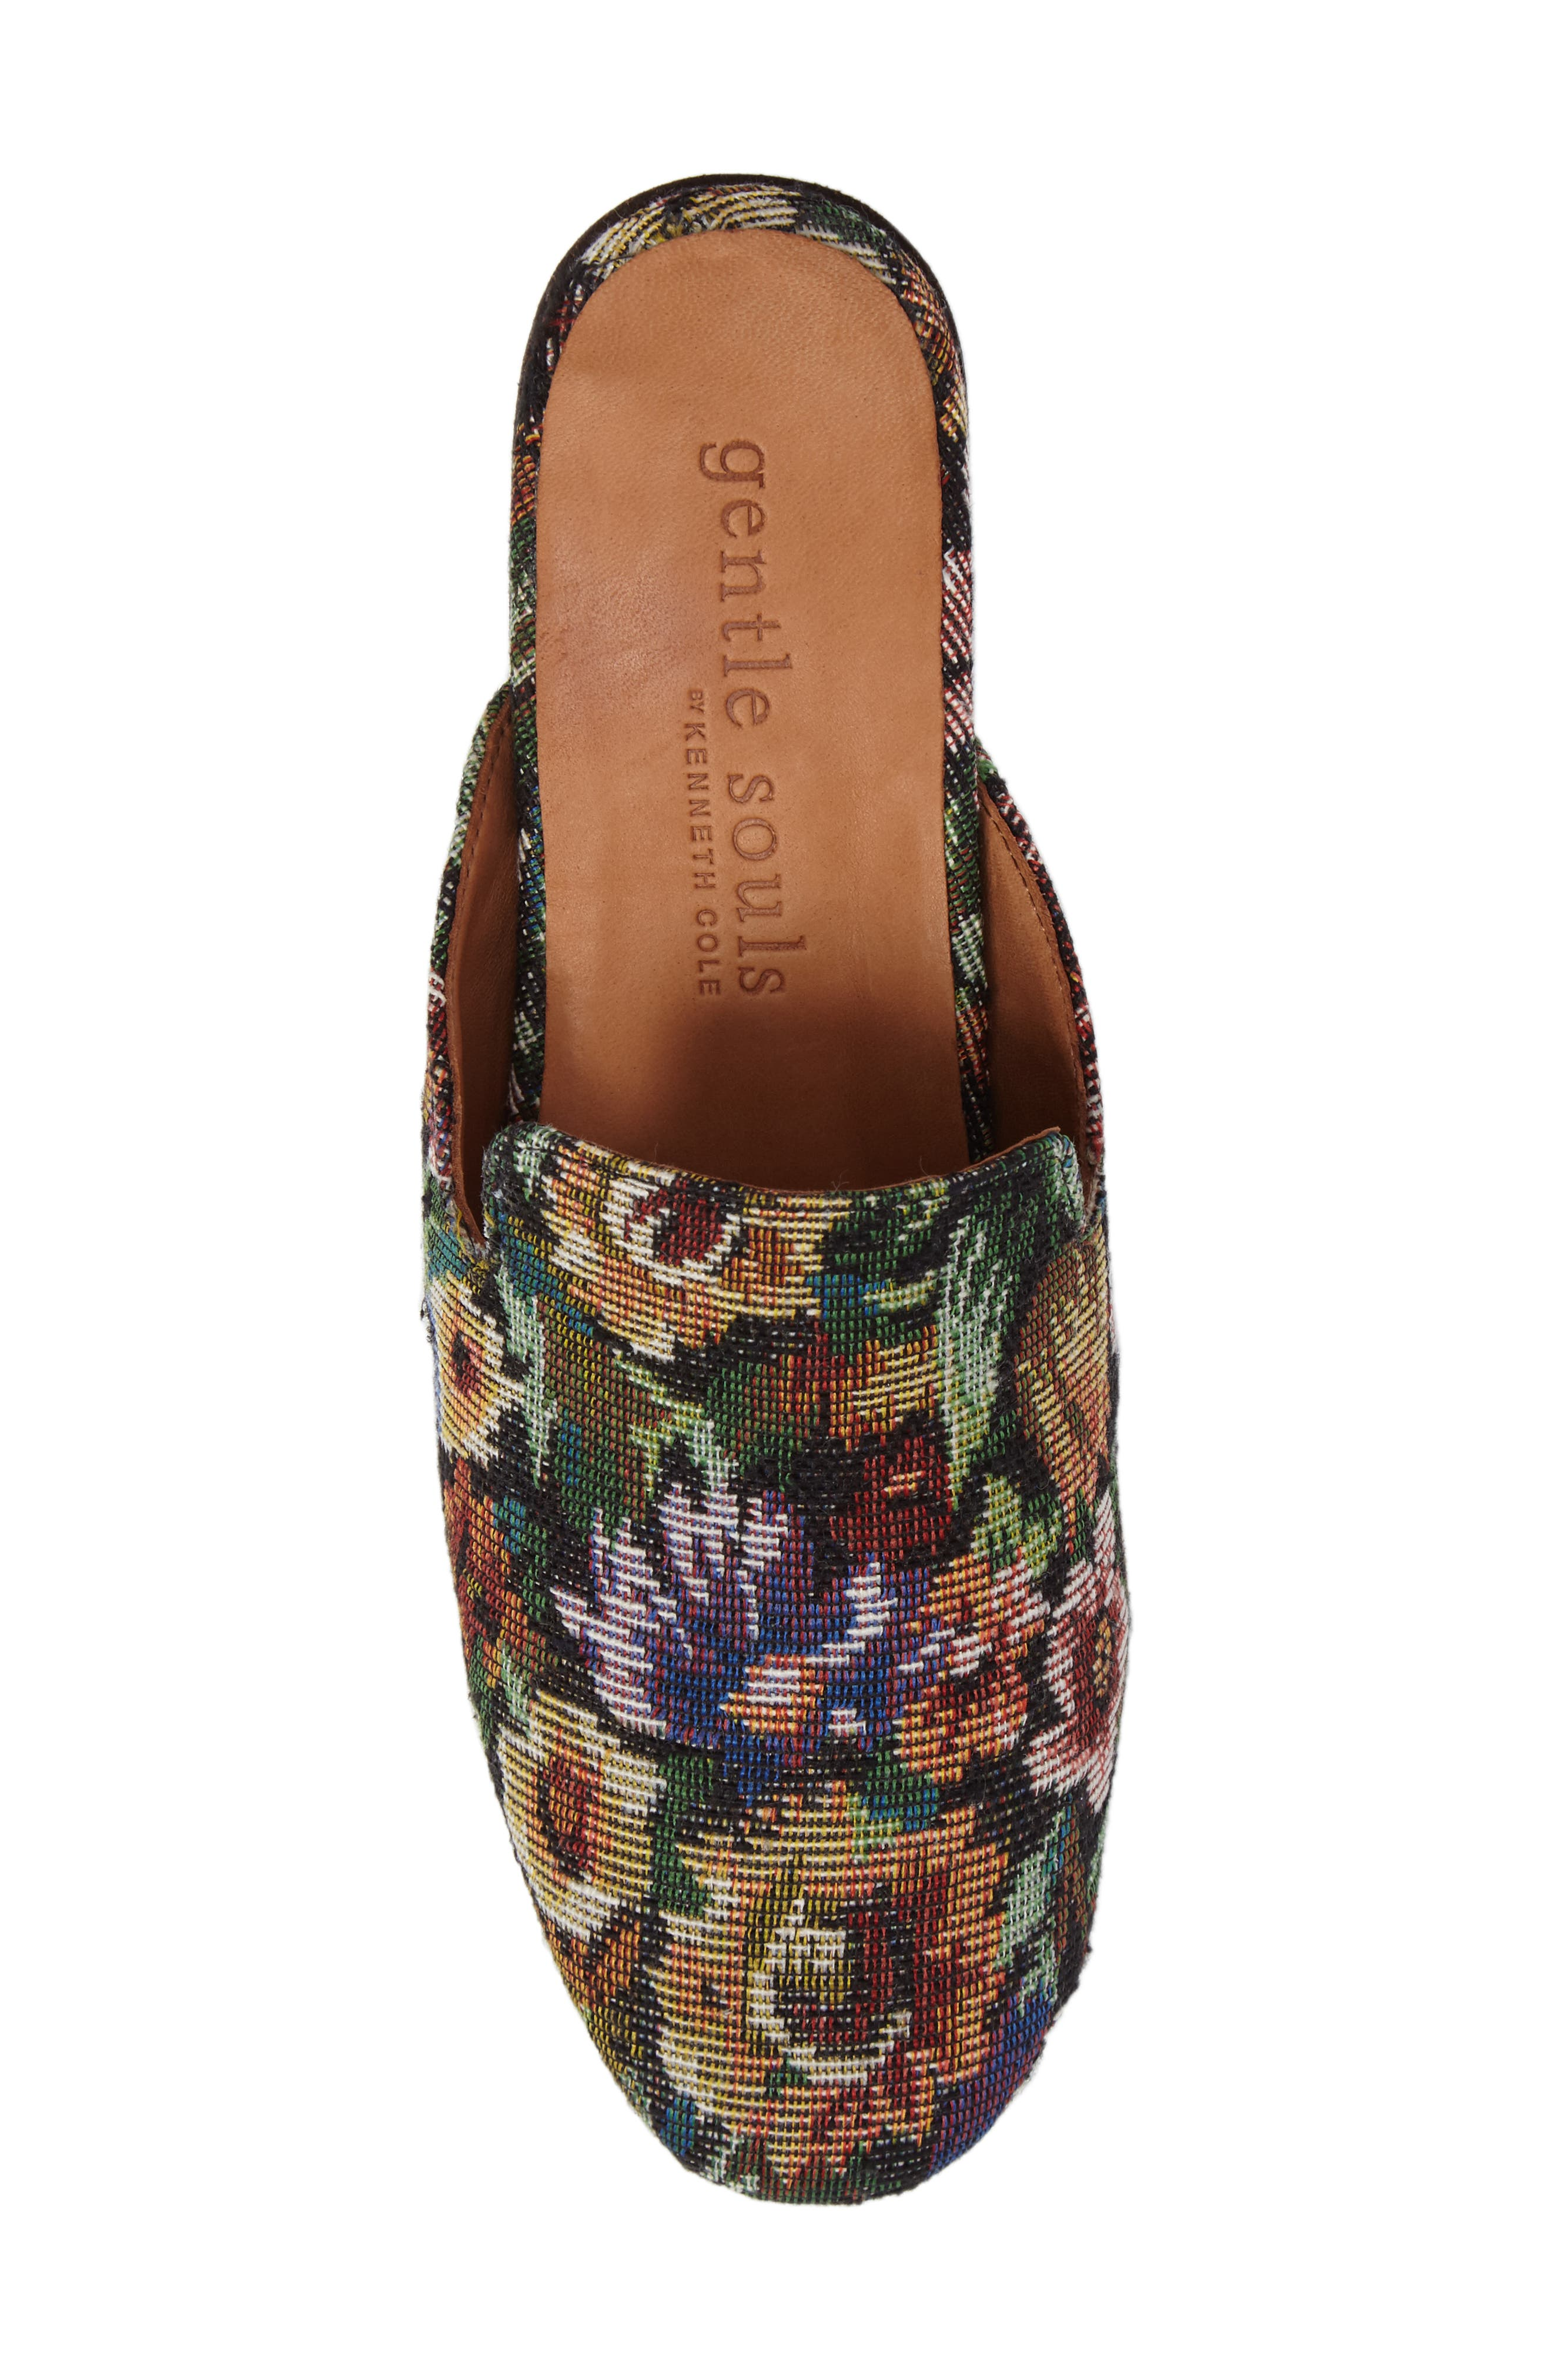 Eida Loafer Mule,                             Alternate thumbnail 5, color,                             Floral Fabric